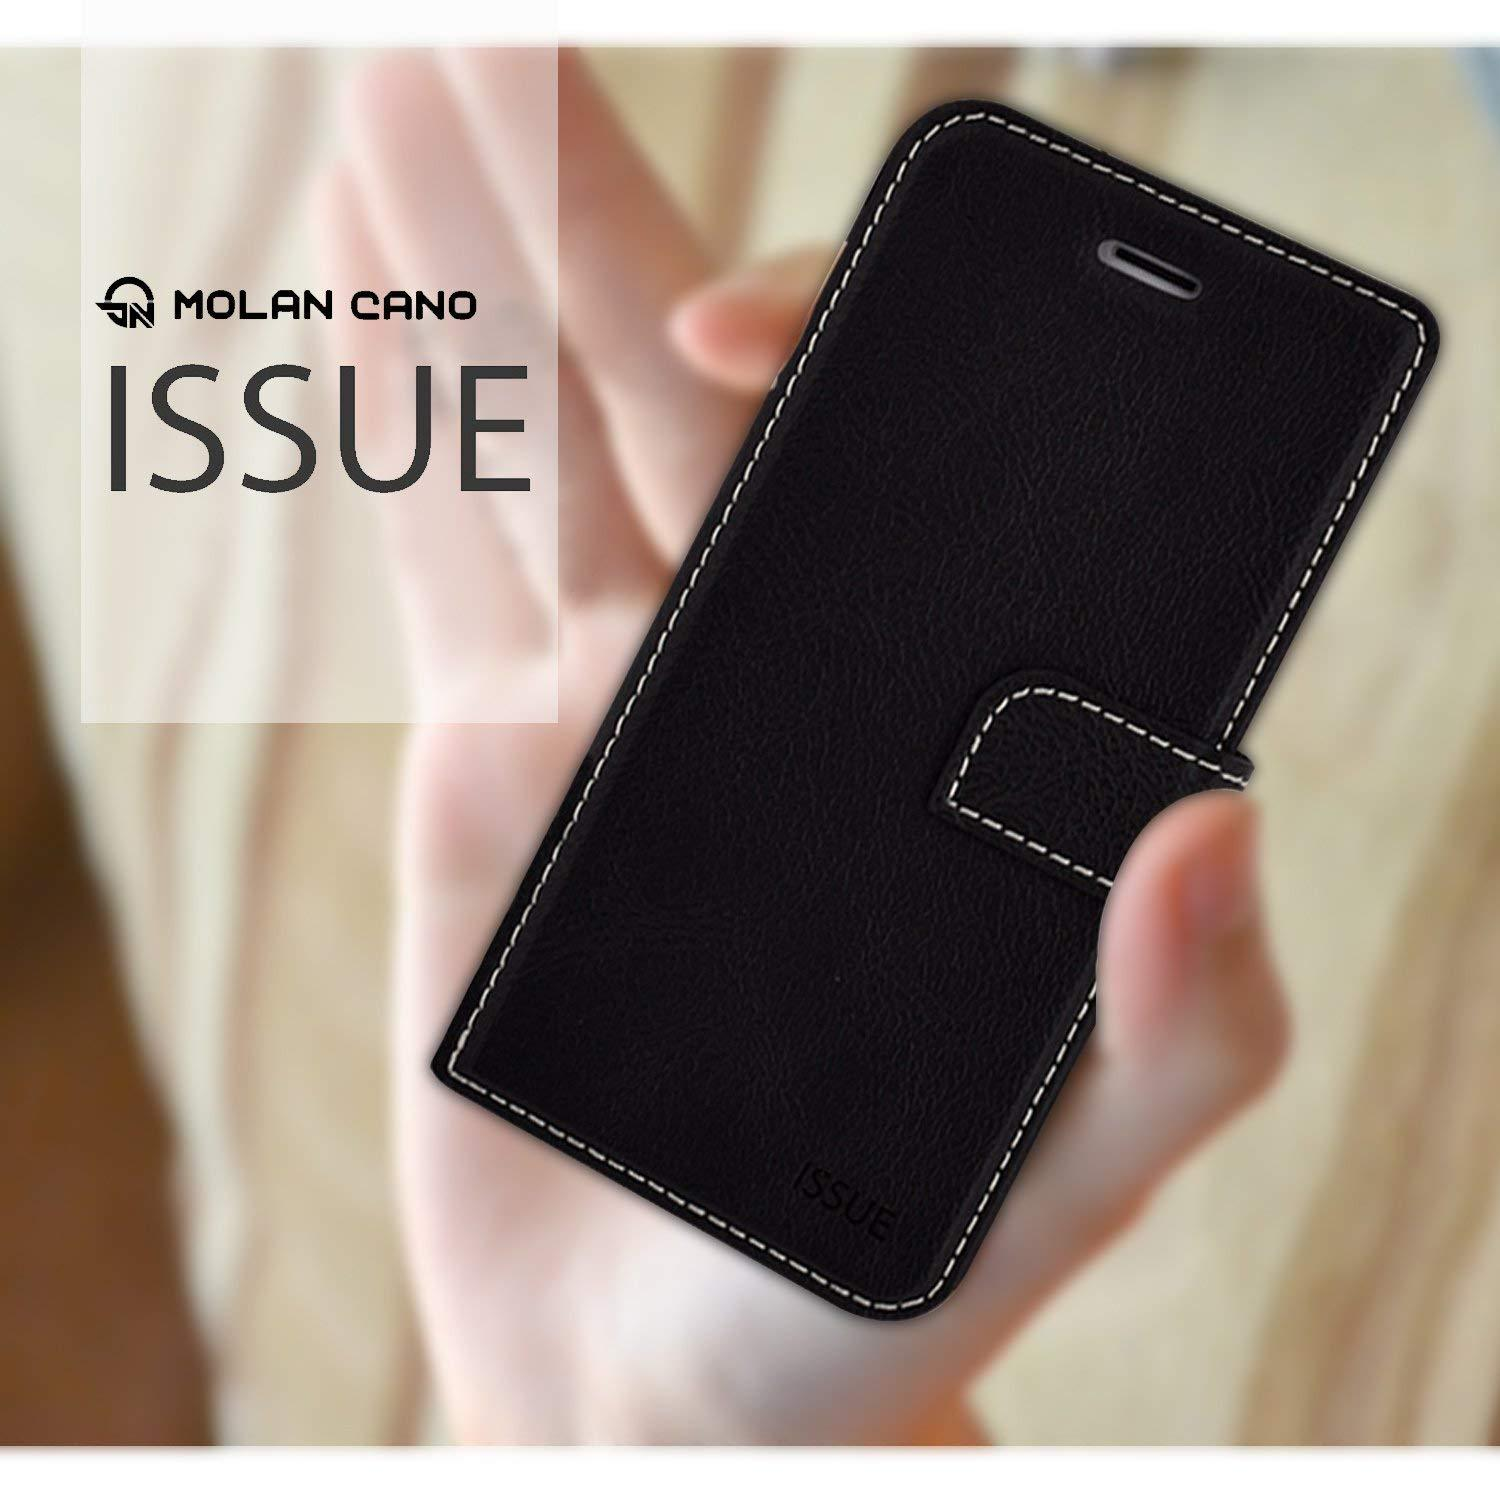 Molan Cano Issue Diary Case Samsung Galaxy Note 4